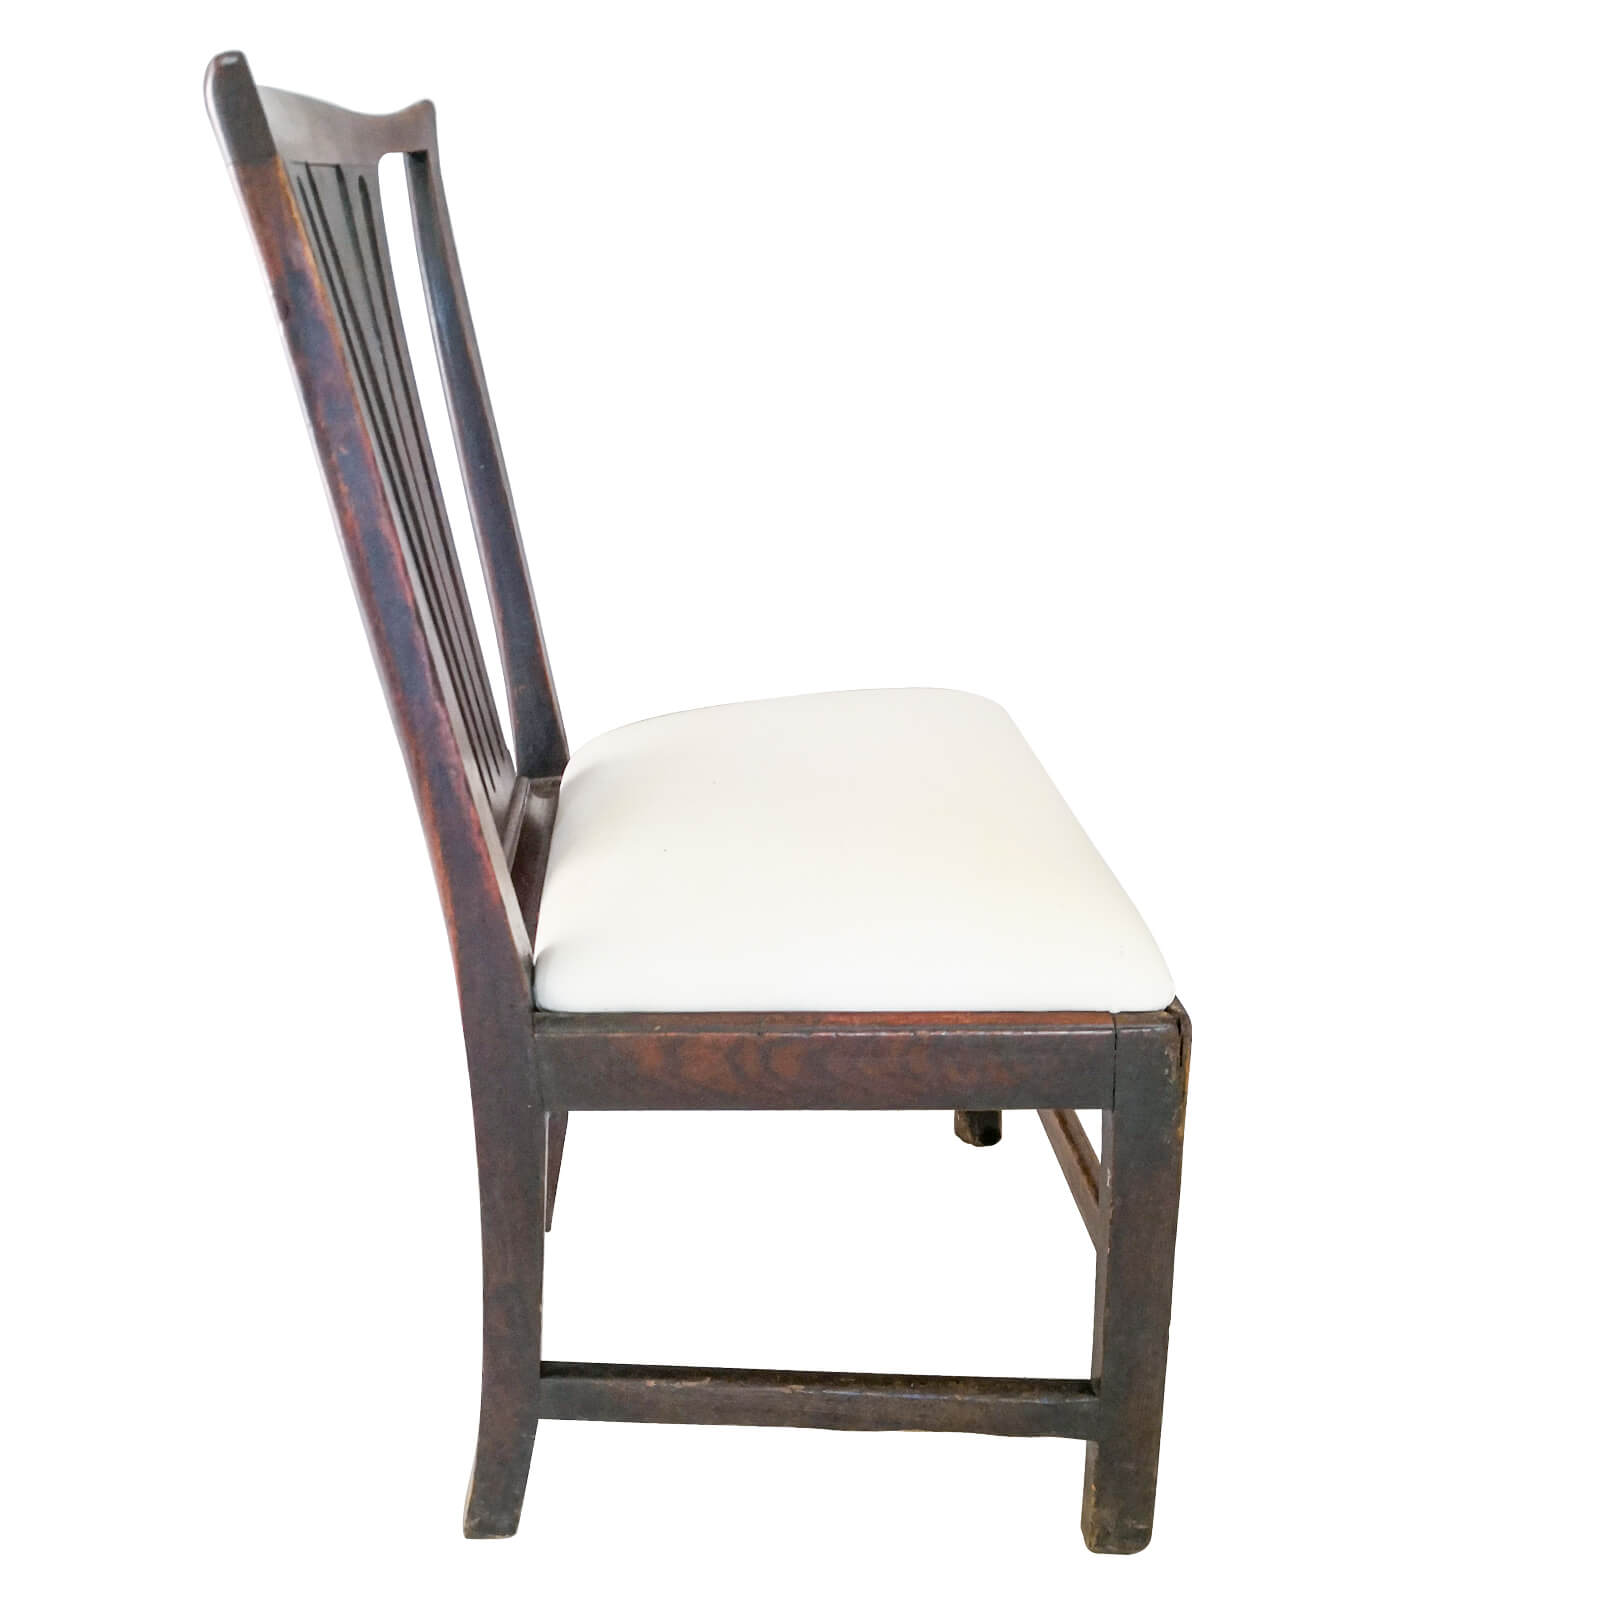 two-design-lovers-Antique-Georgian-dining-chair-side